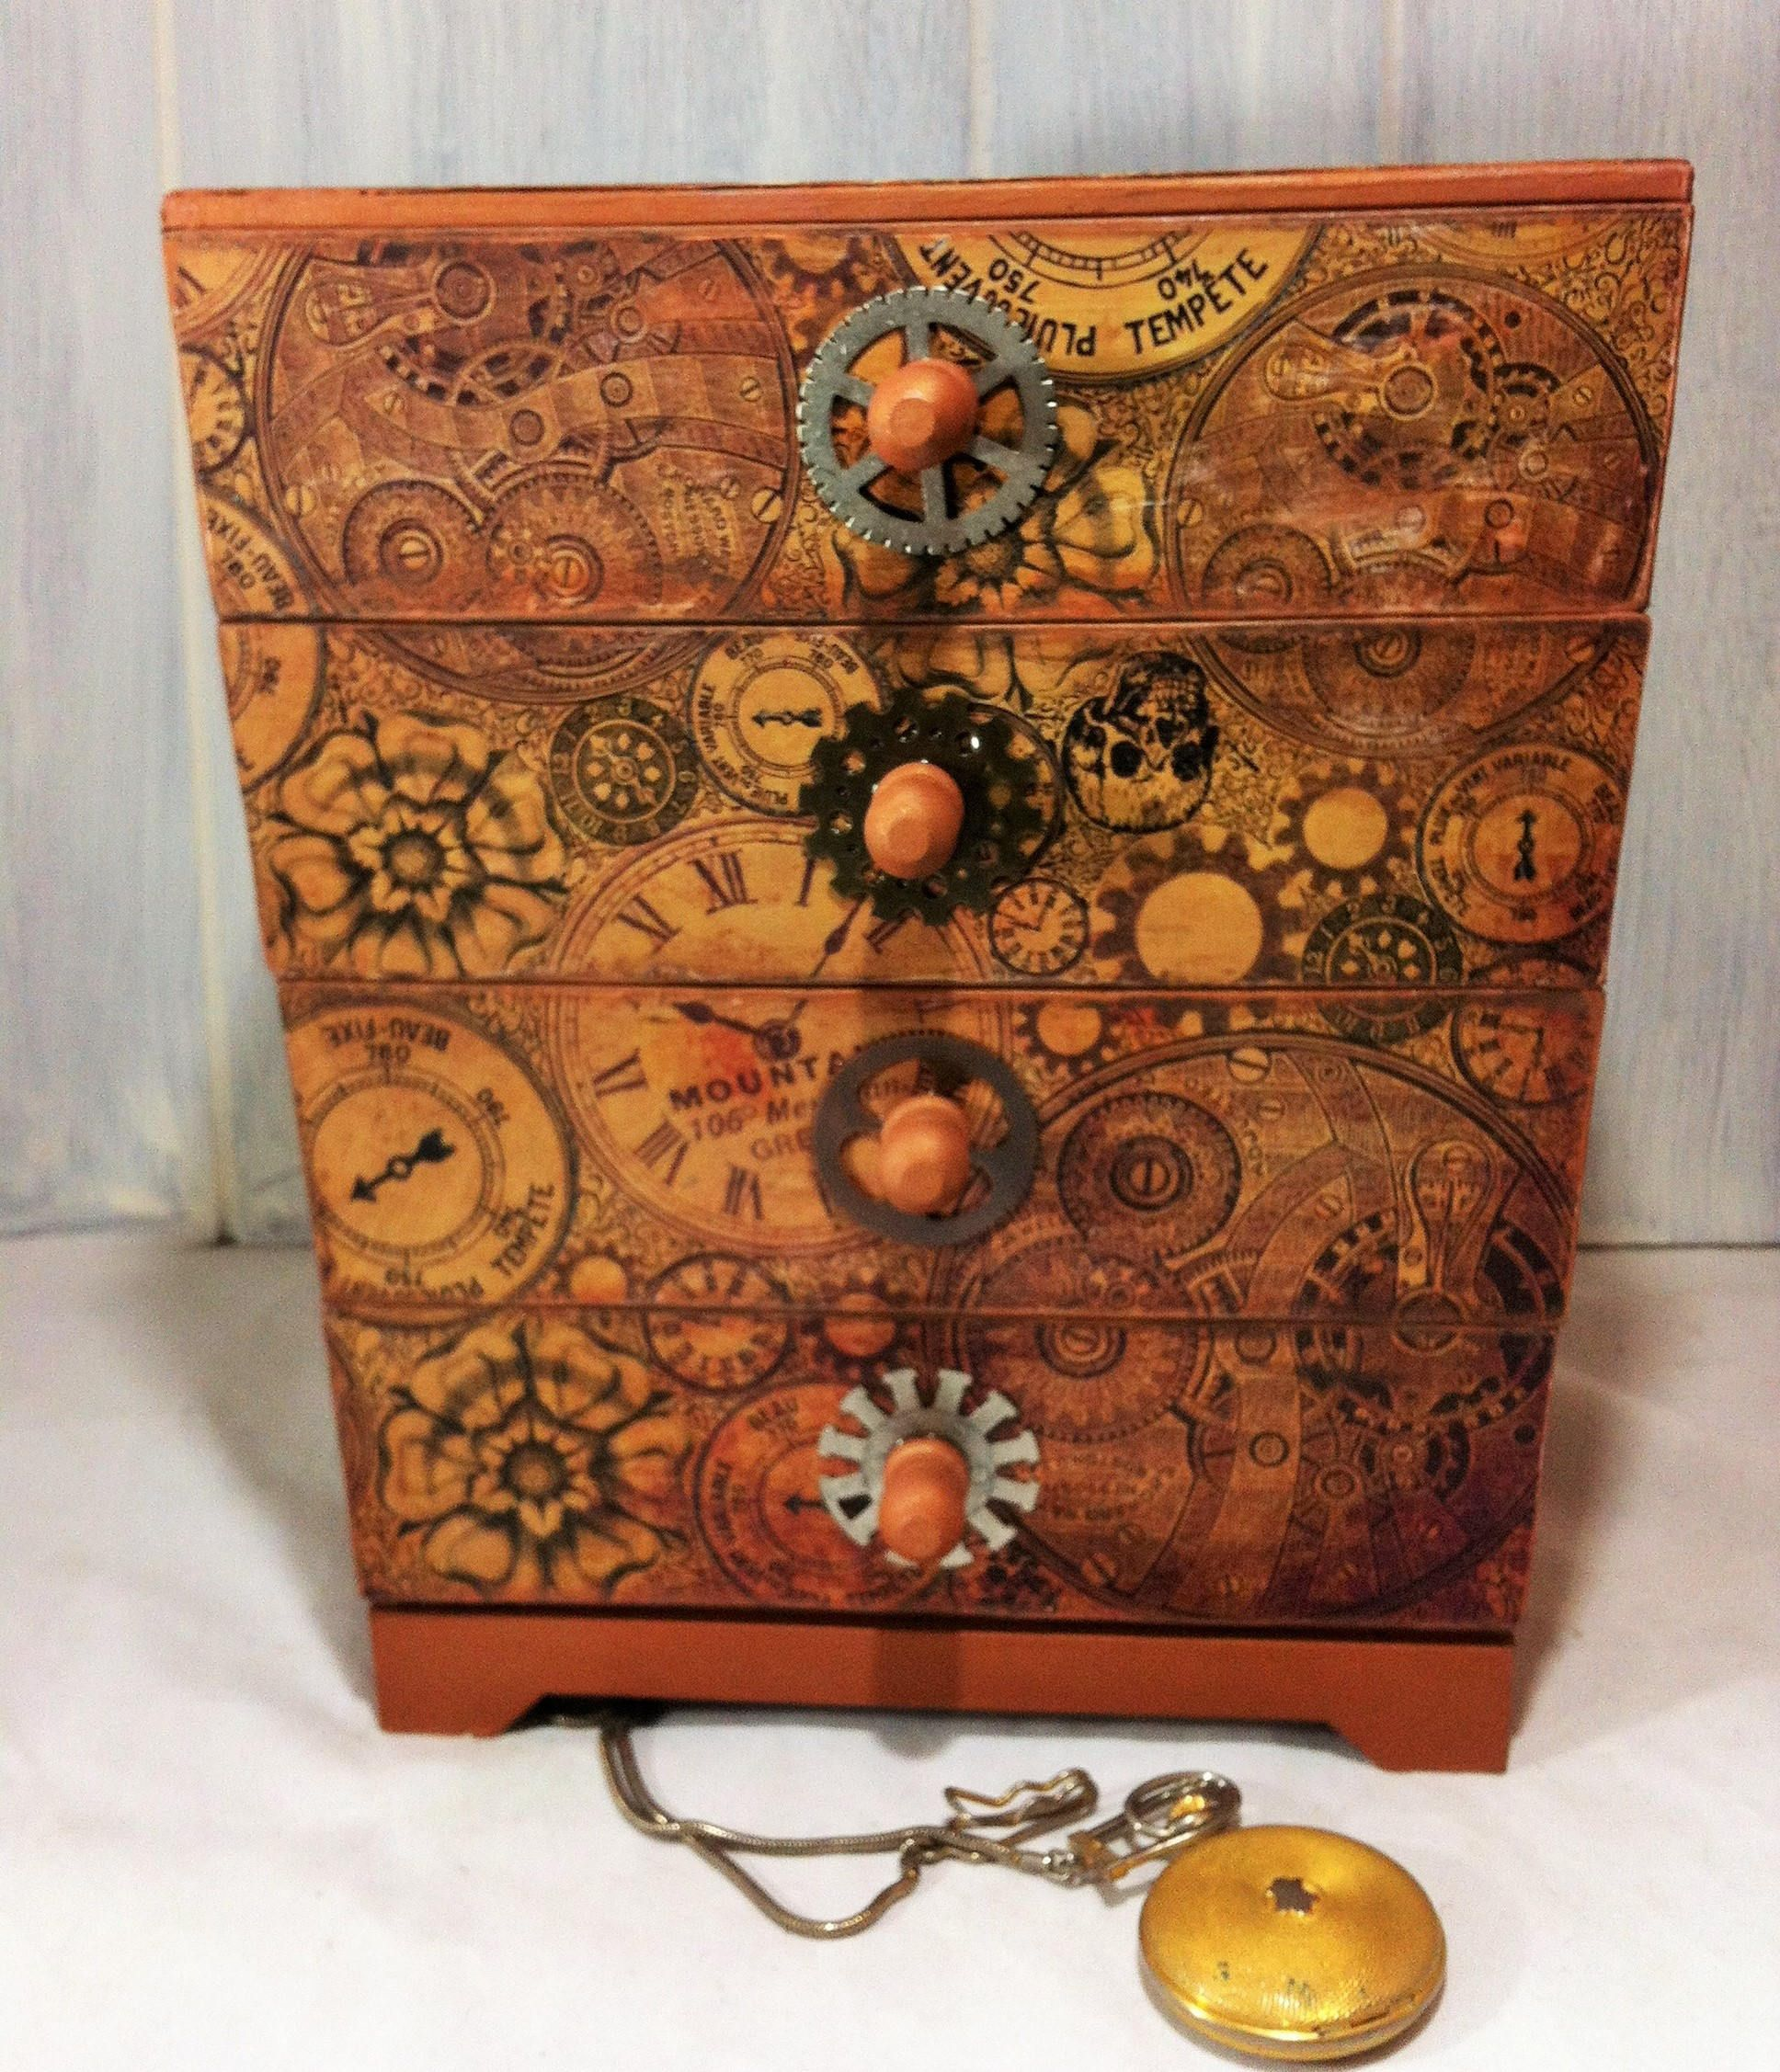 Vintage Clock Gears Jewelry Box Steampunk Jewelry Keepsake Box